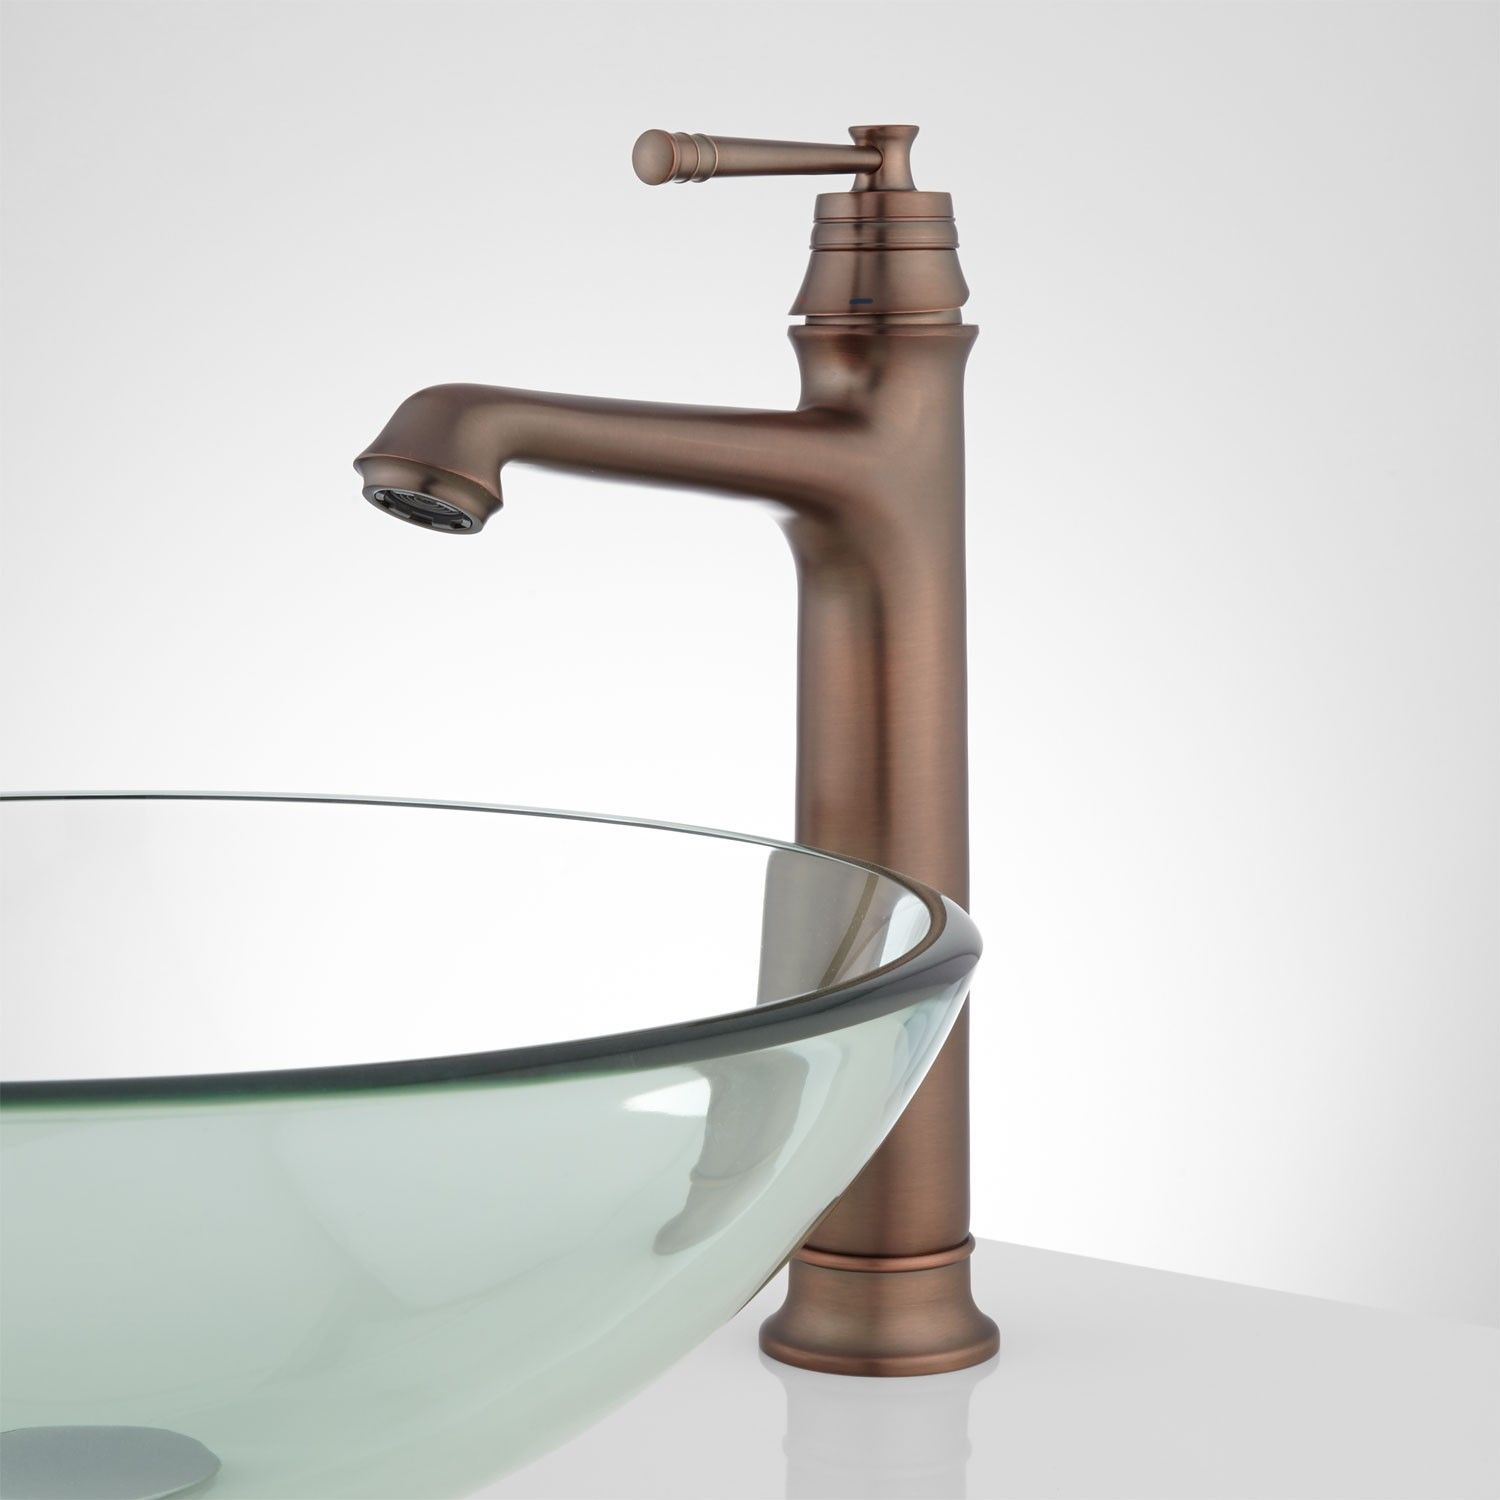 Lucia Single-Hole Vessel Faucet | Vessel faucets, Faucet and Powder room